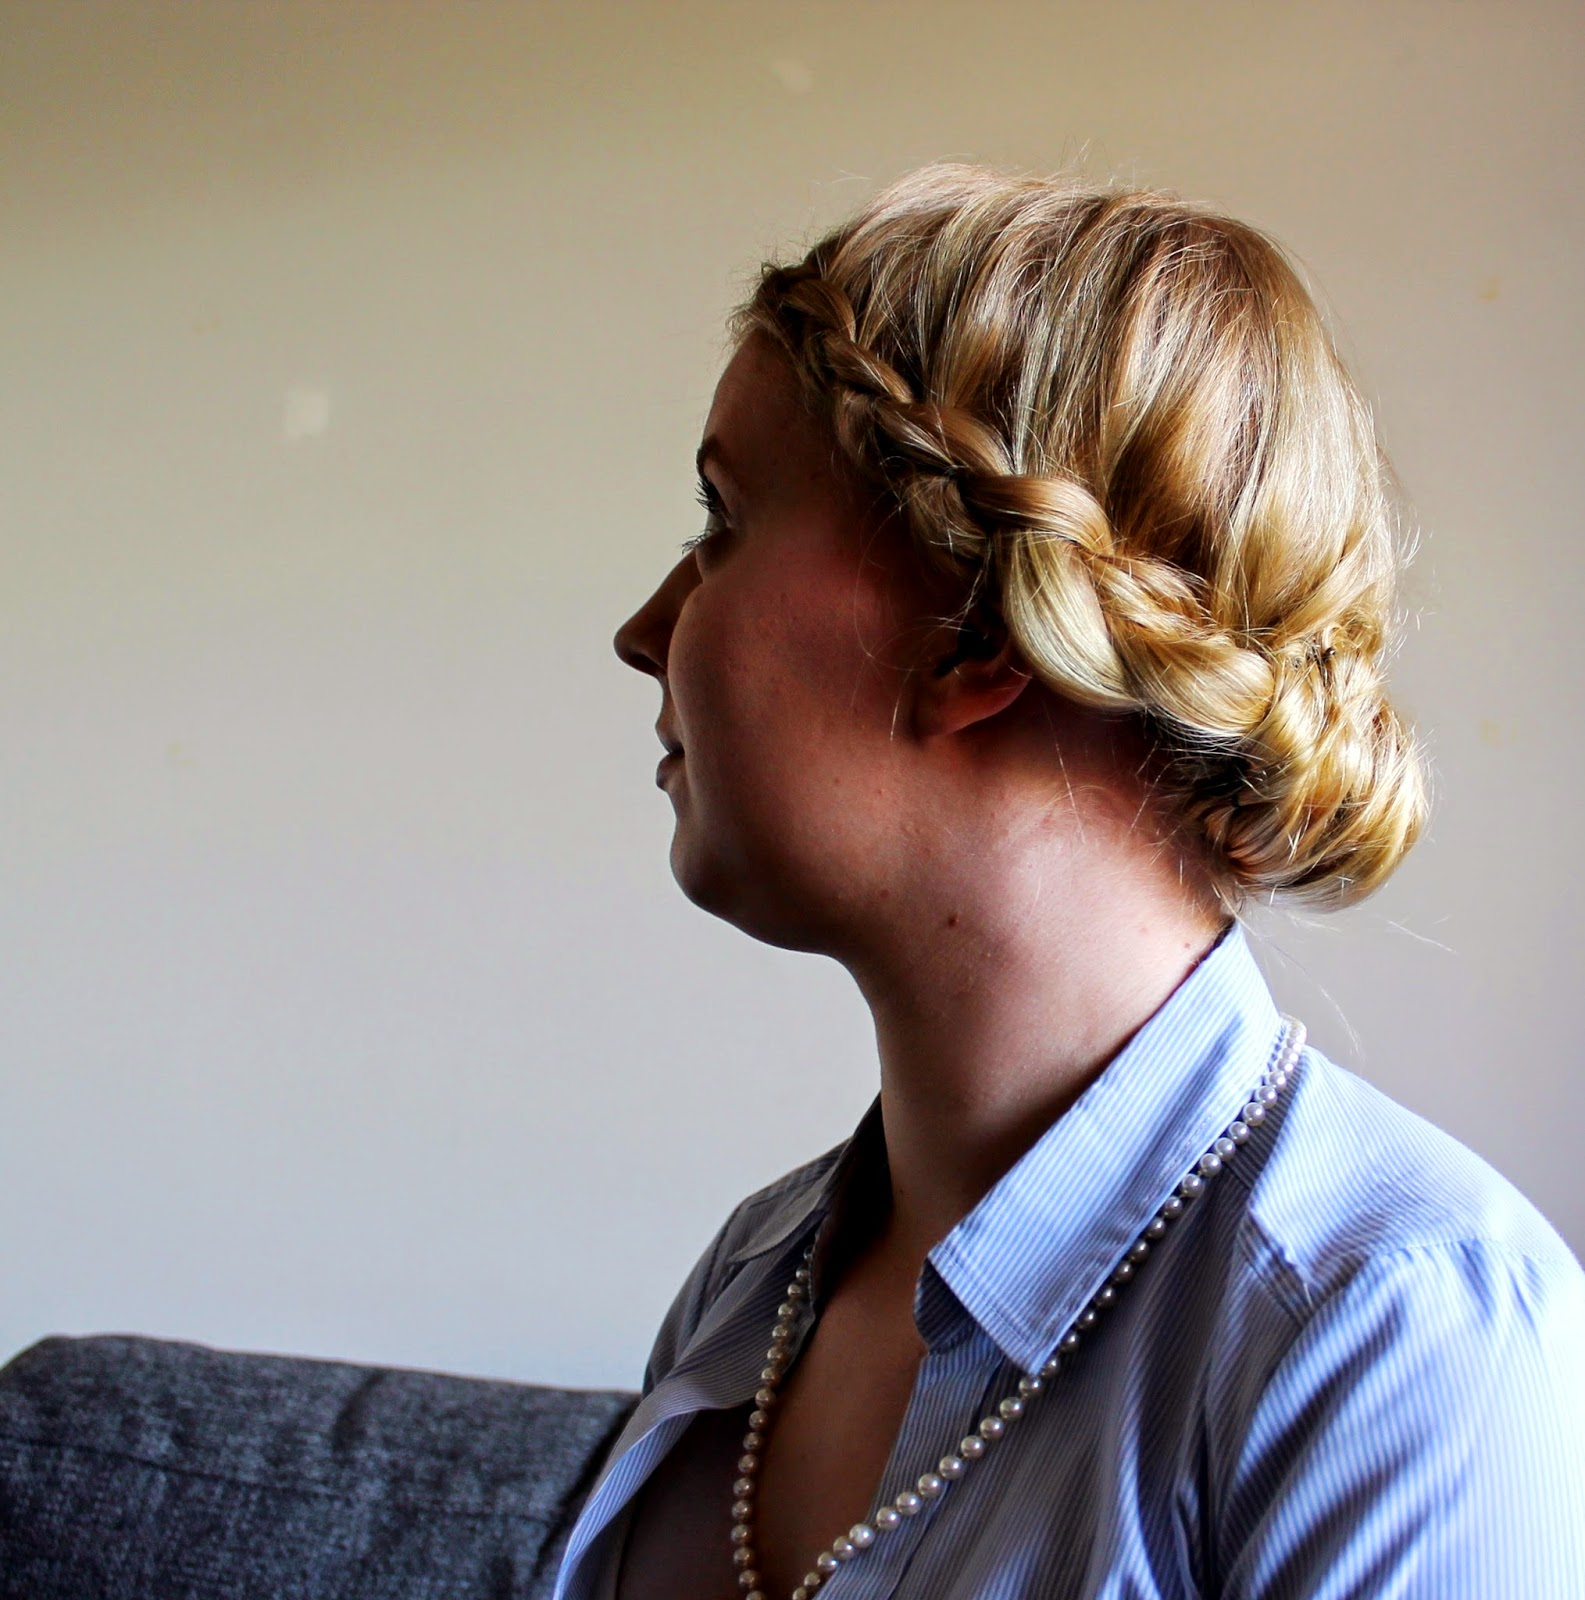 Game of thrones braid and updo from side | Alinan kotona blog